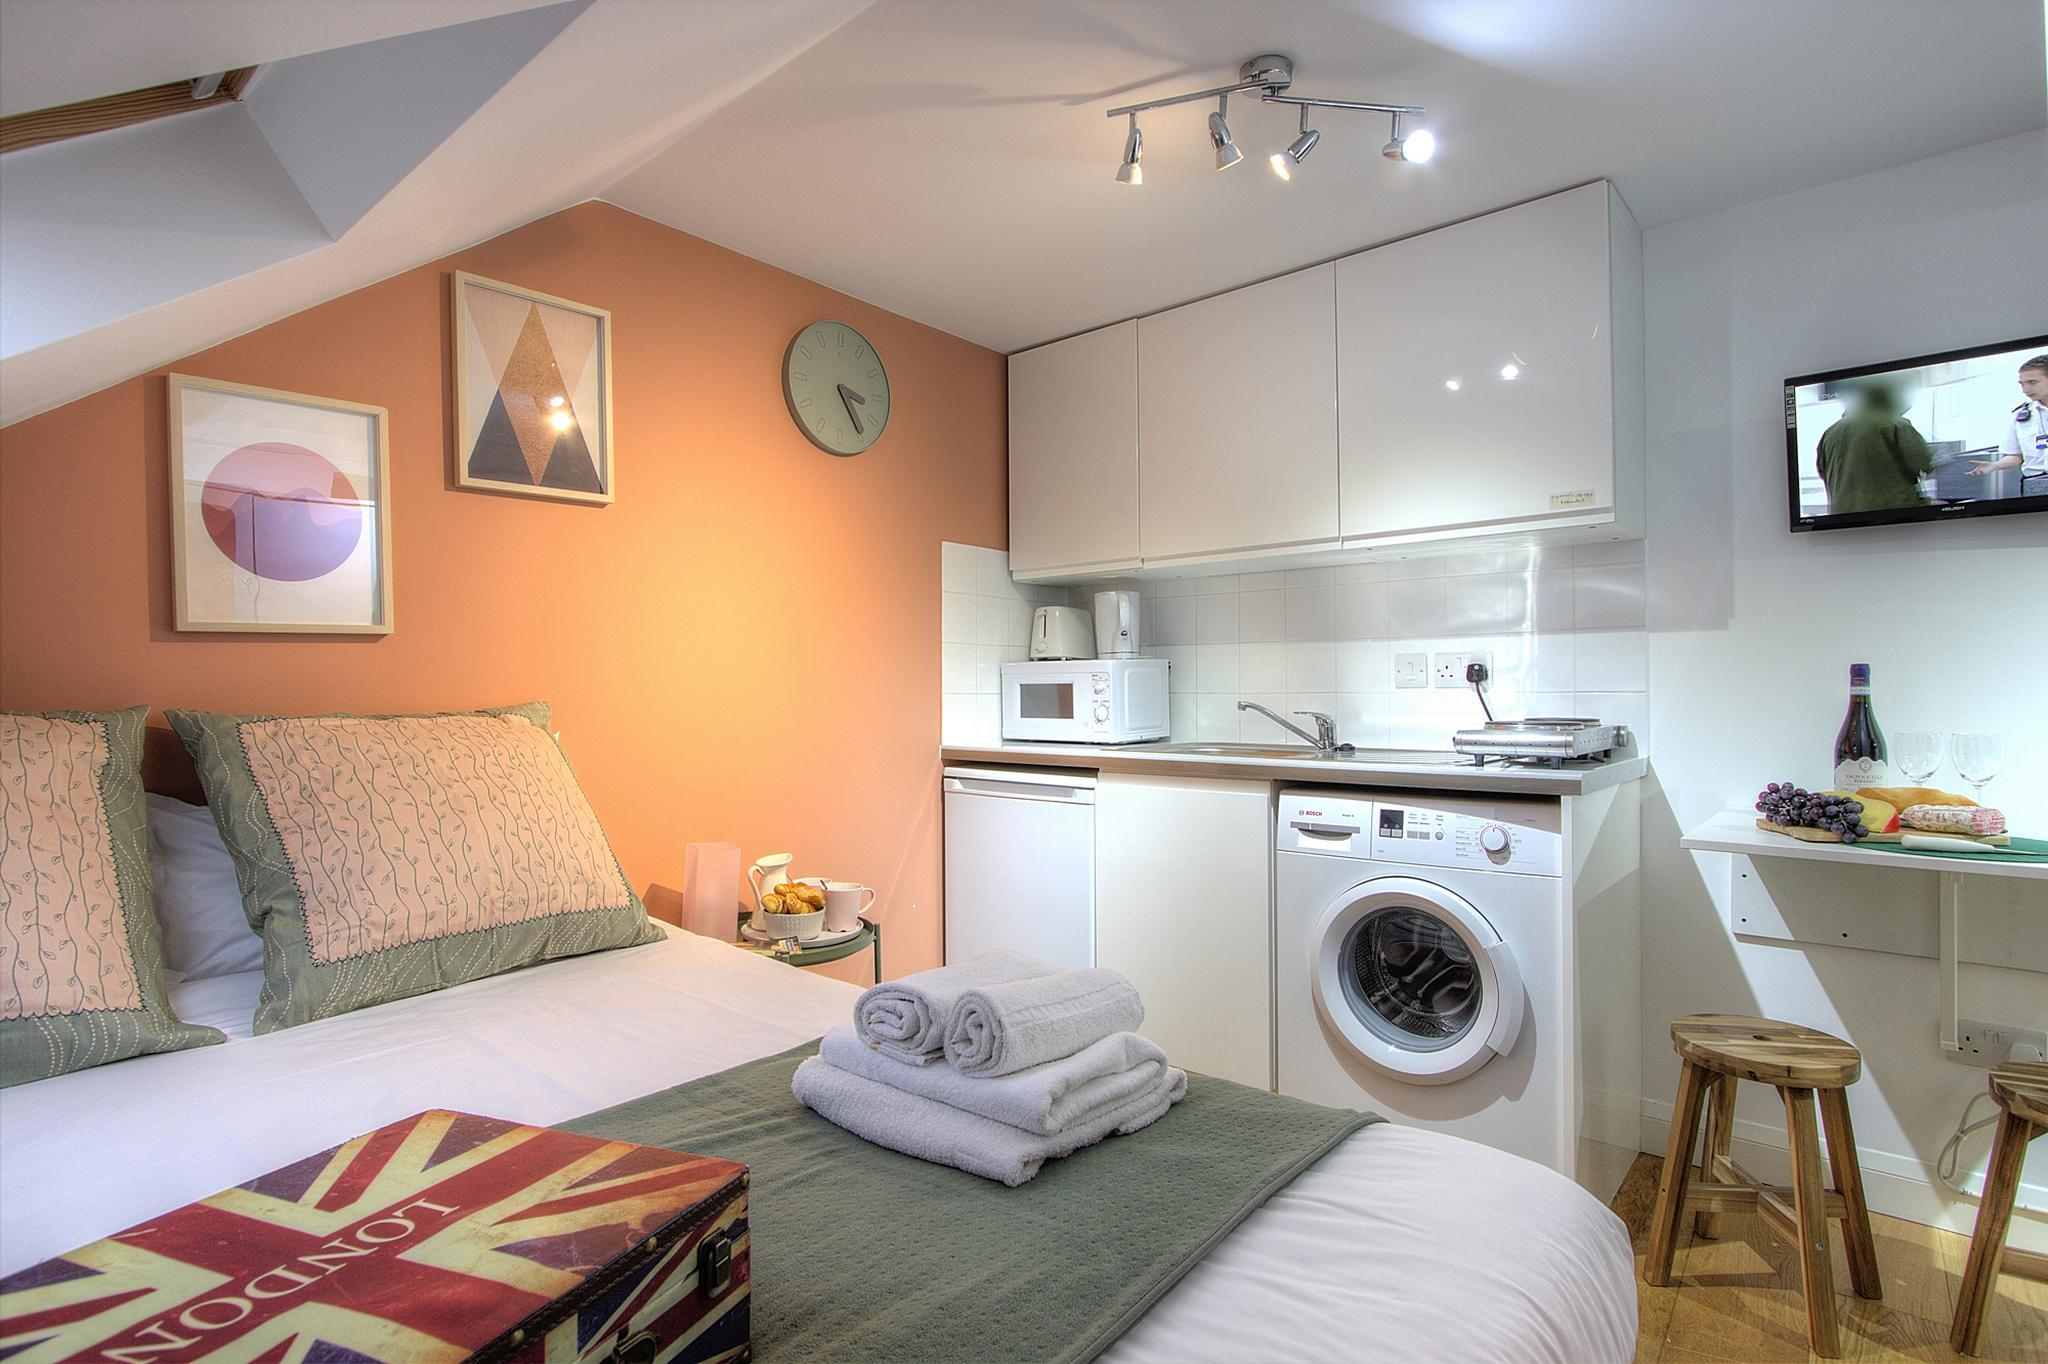 Hotel Review: Private Studio Close to Metro #R7 – Room Prices, Pictures & Deals